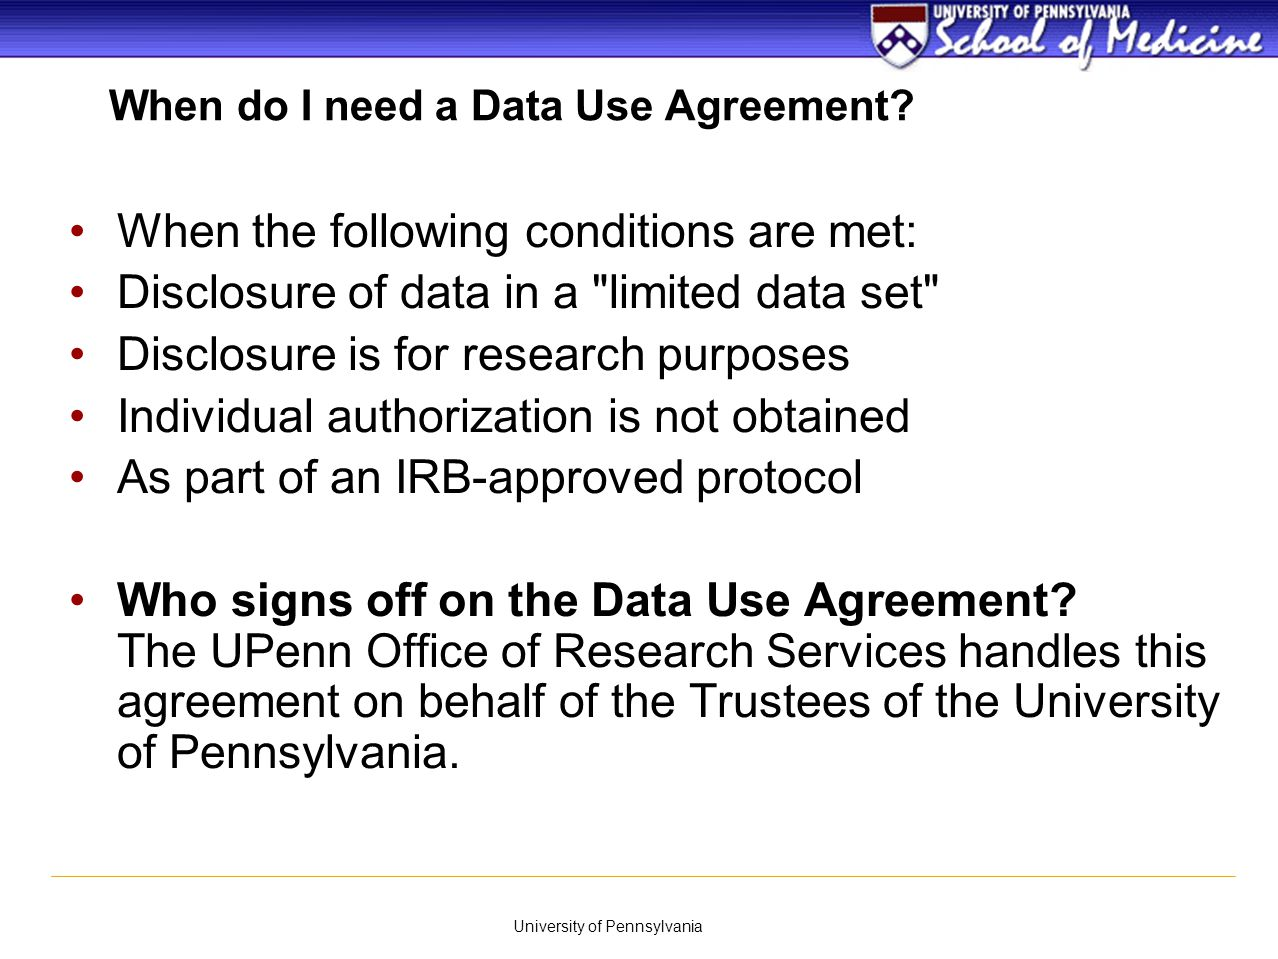 When do I need a Data Use Agreement